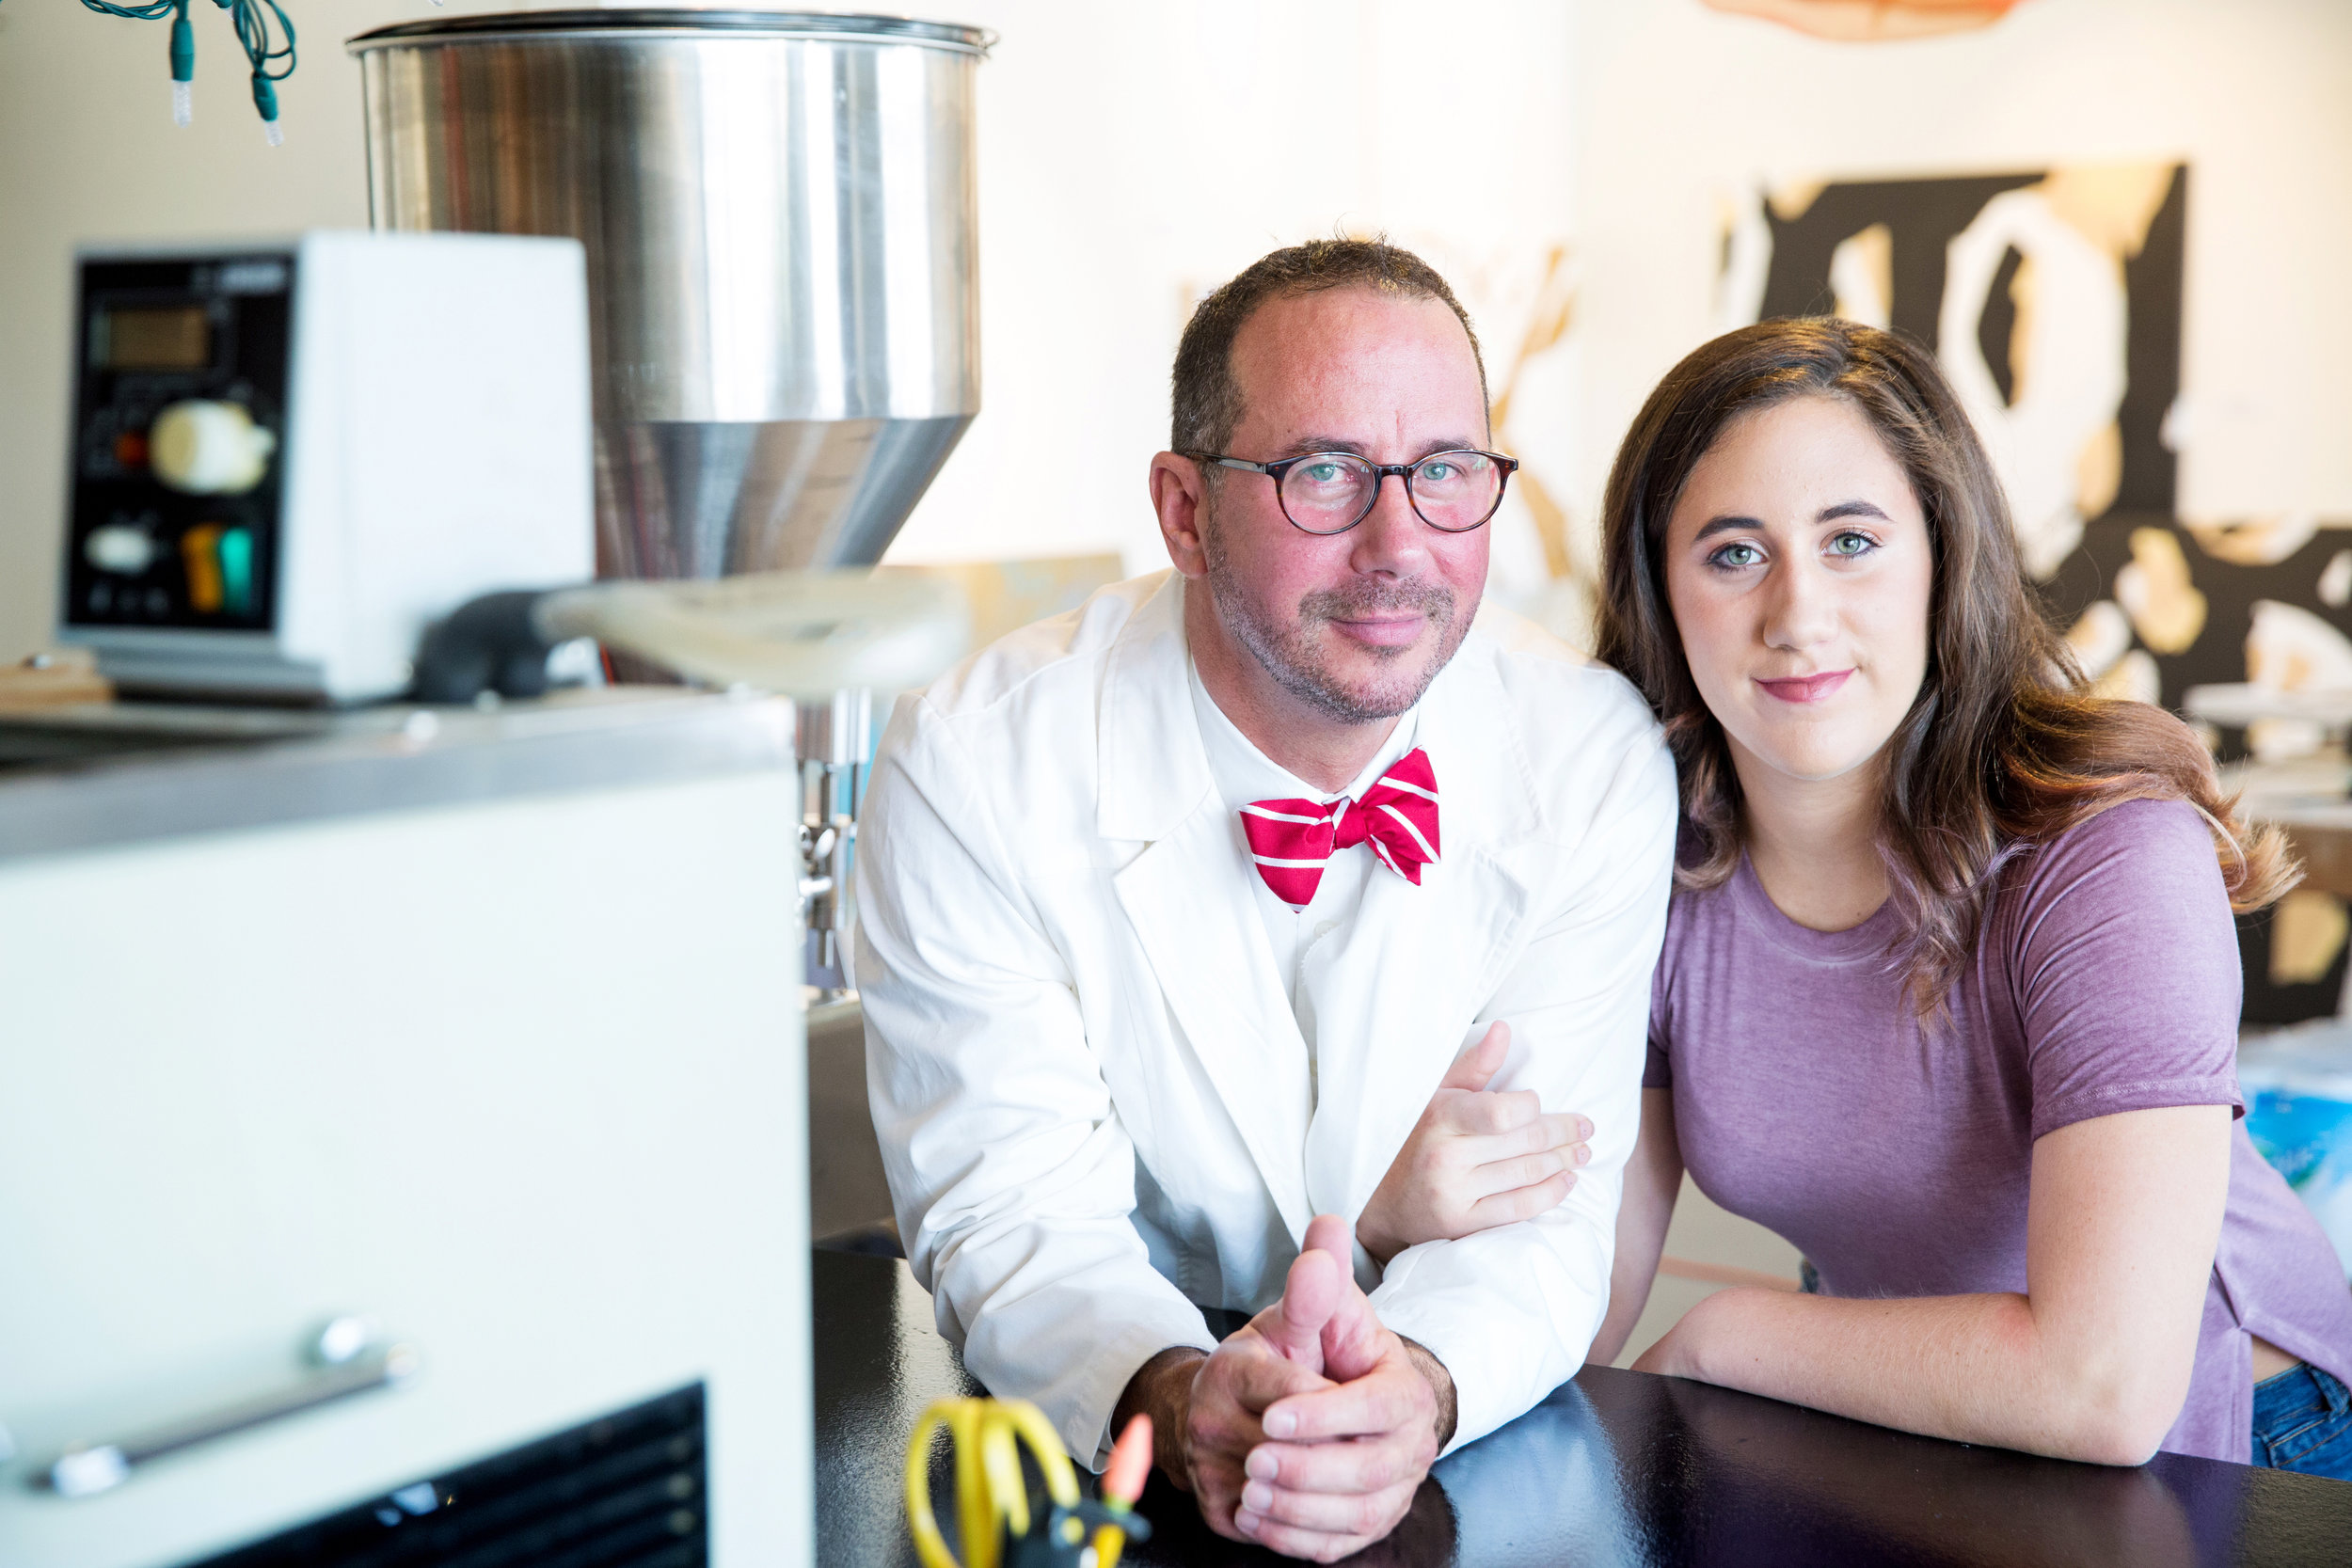 Boyce Clark with his daughter Alden. Photo compliments of Lubricity Labs.